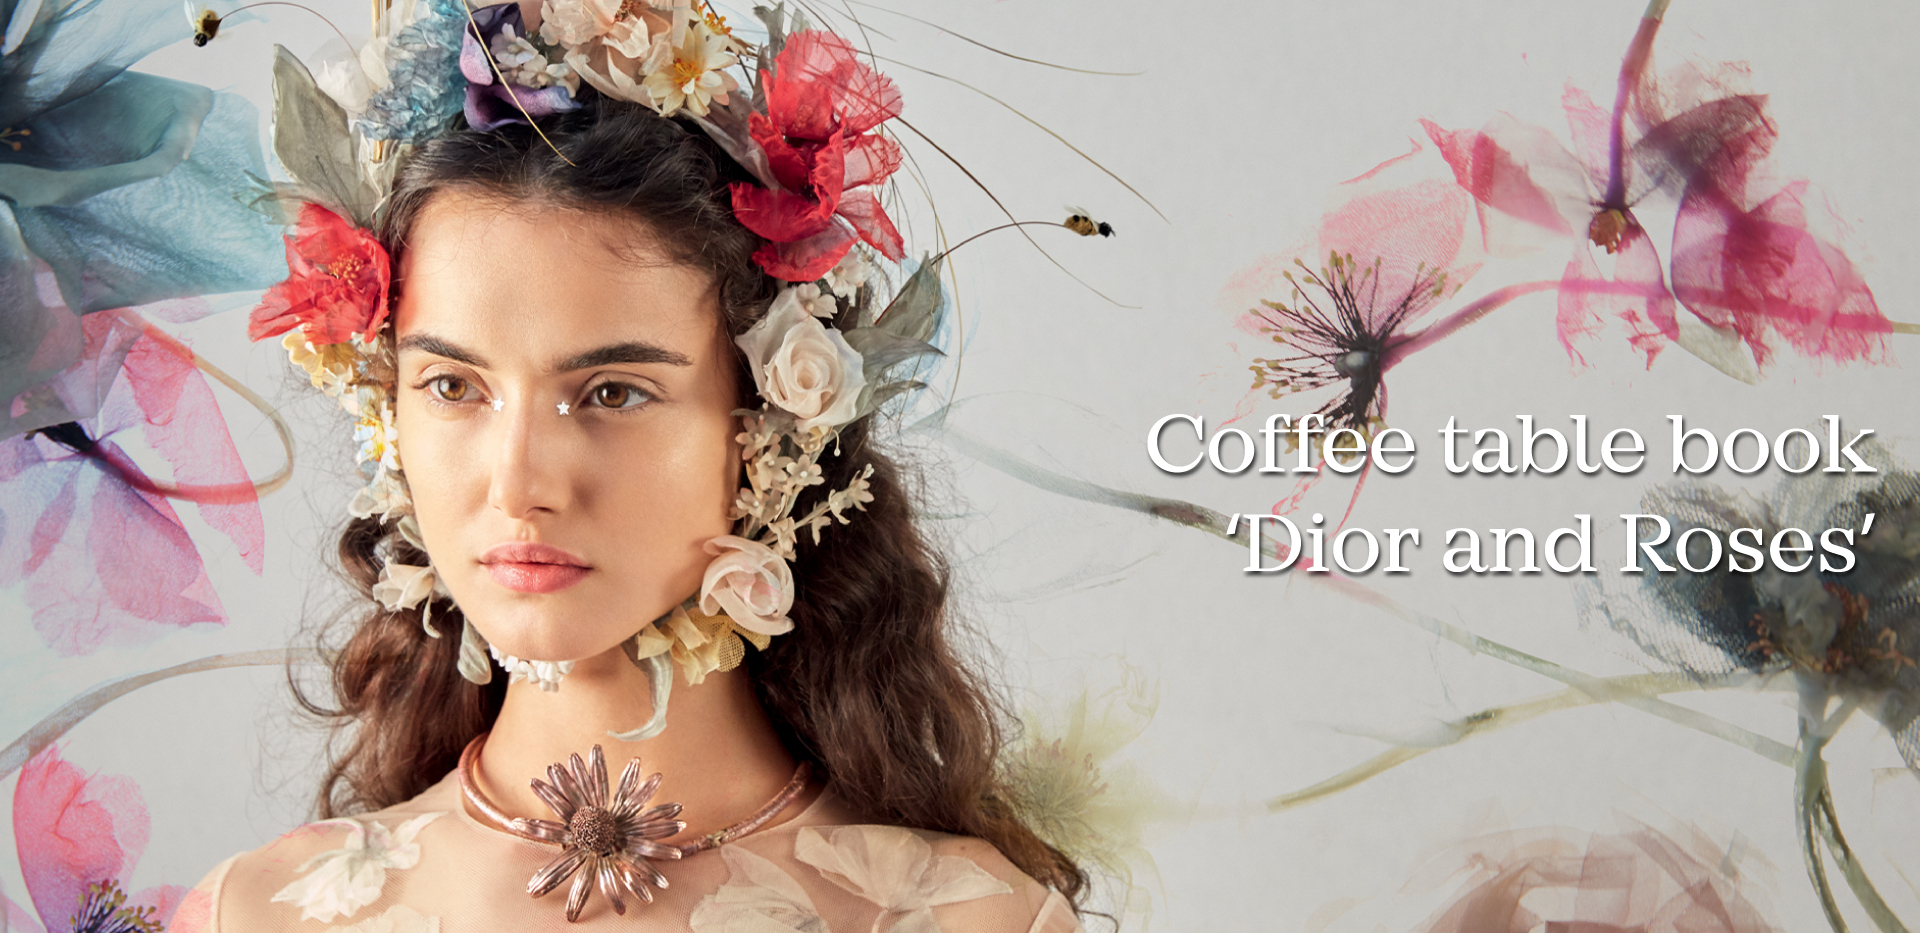 Coffee table book : Dior and Roses